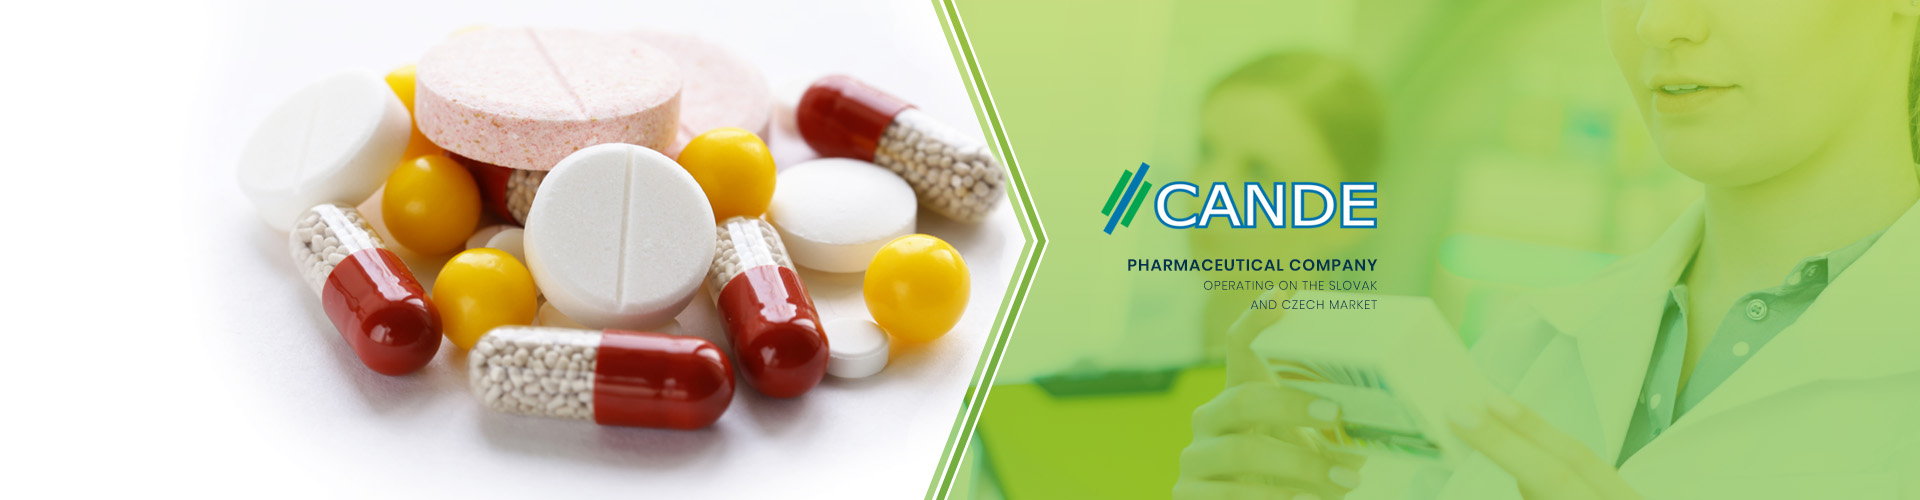 CANDE Pharmaceutical company